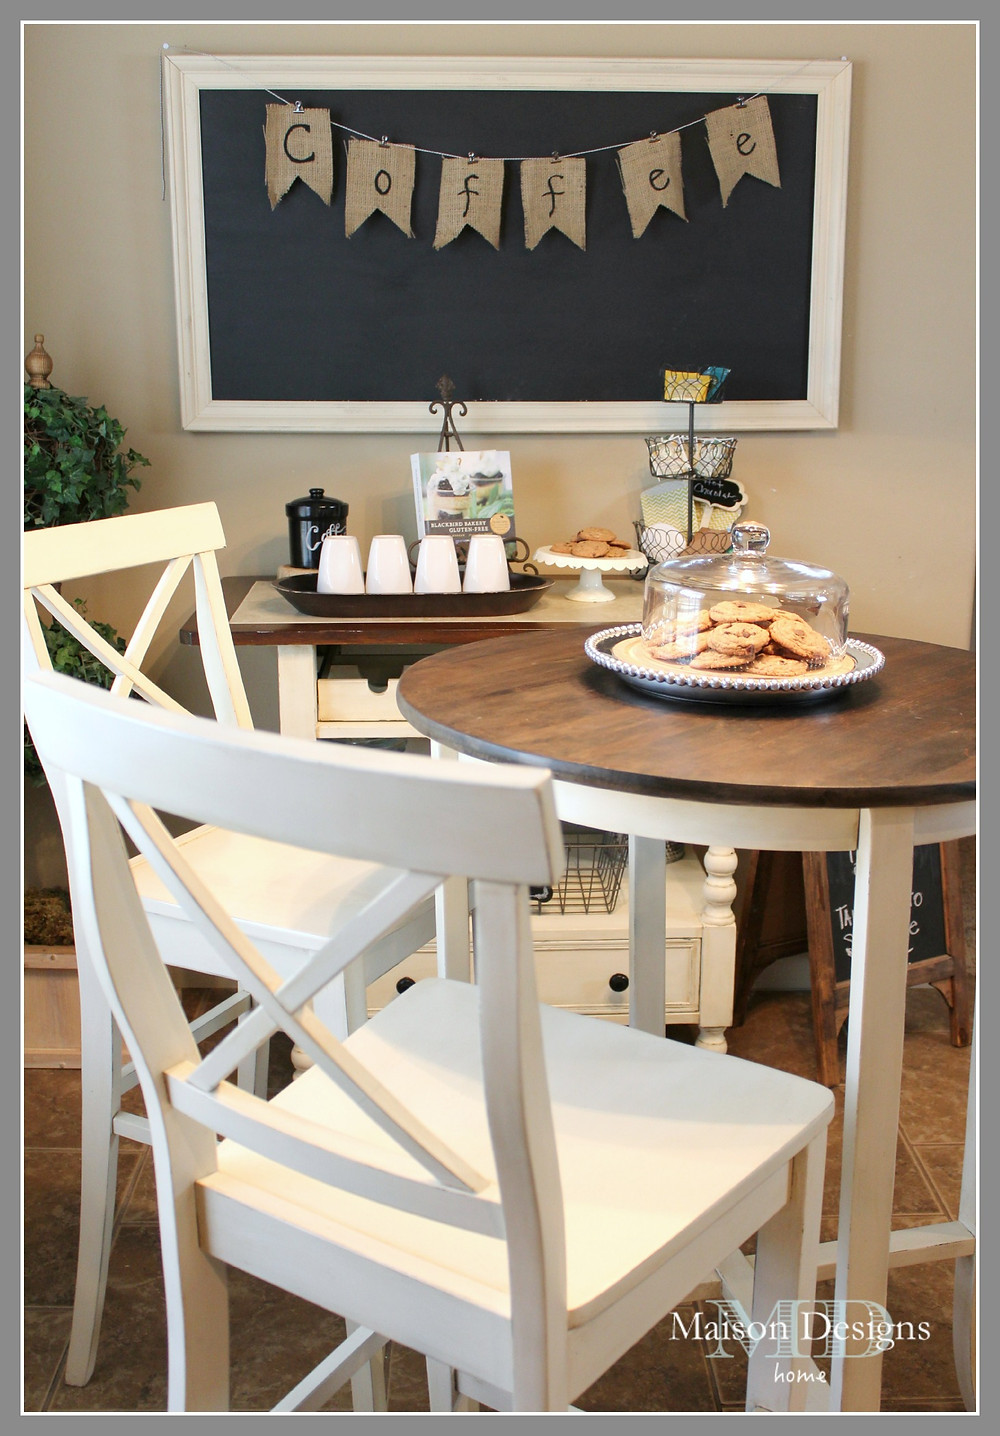 Bistro Set Makeover Maison Designs Home